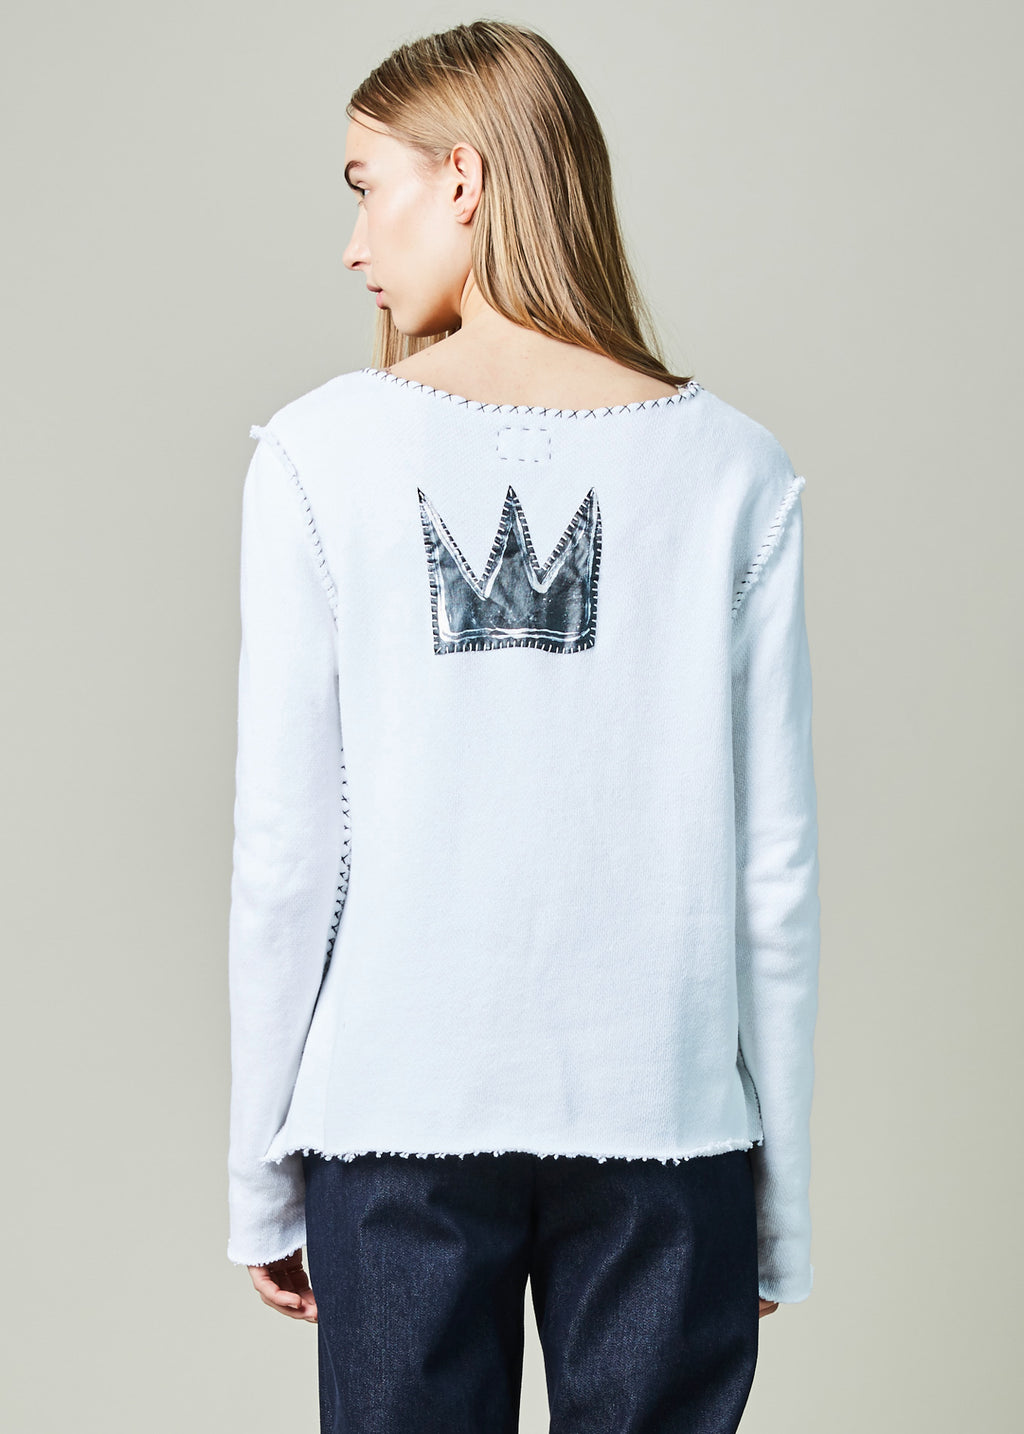 Crown Applique Sweatshirt